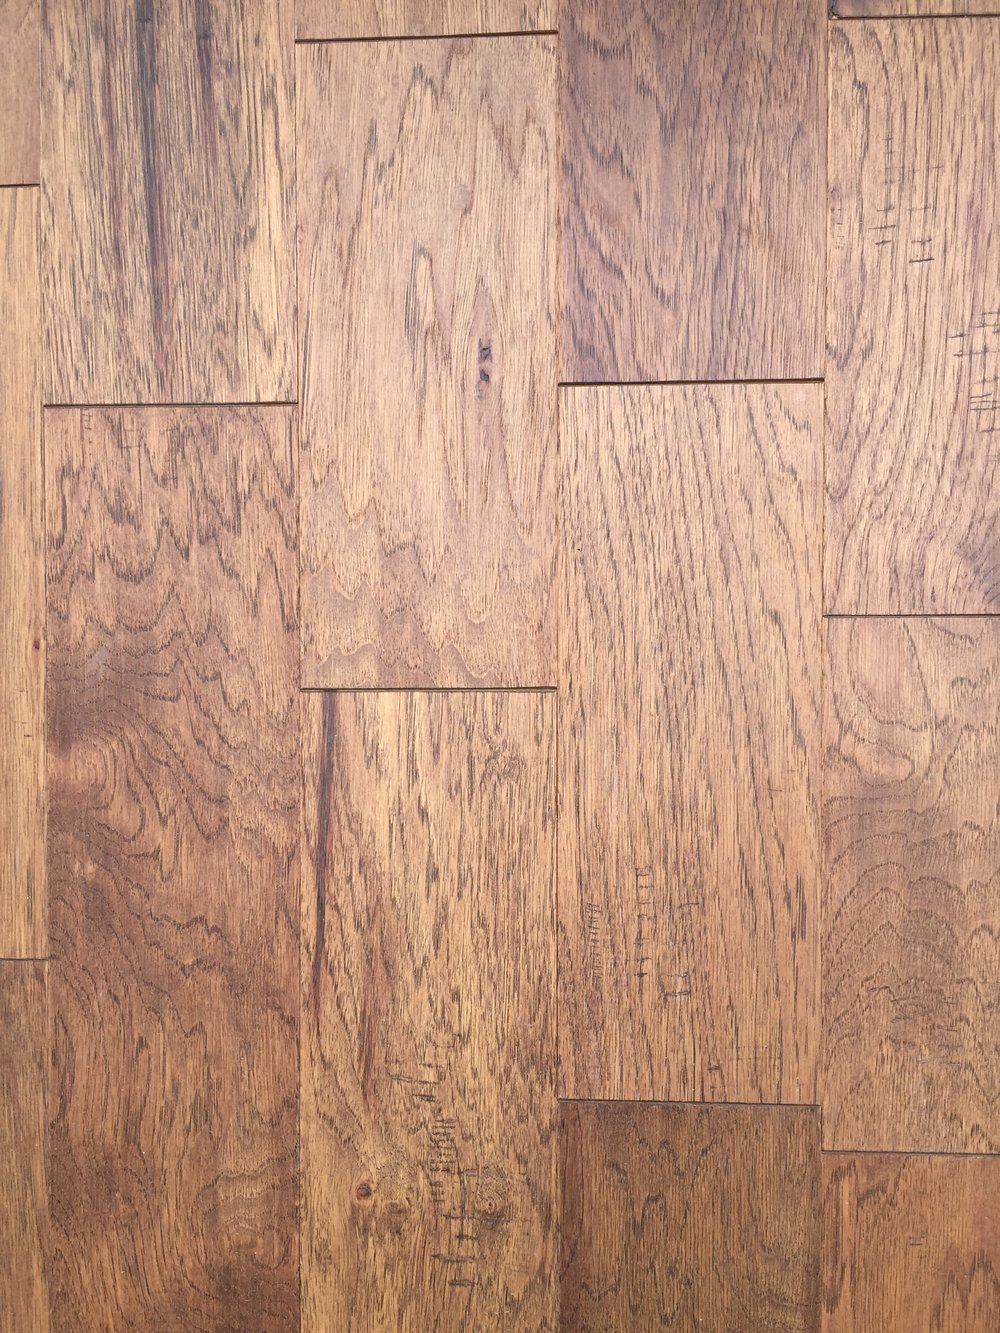 Pioneer Valley Hickory - color: Saloon